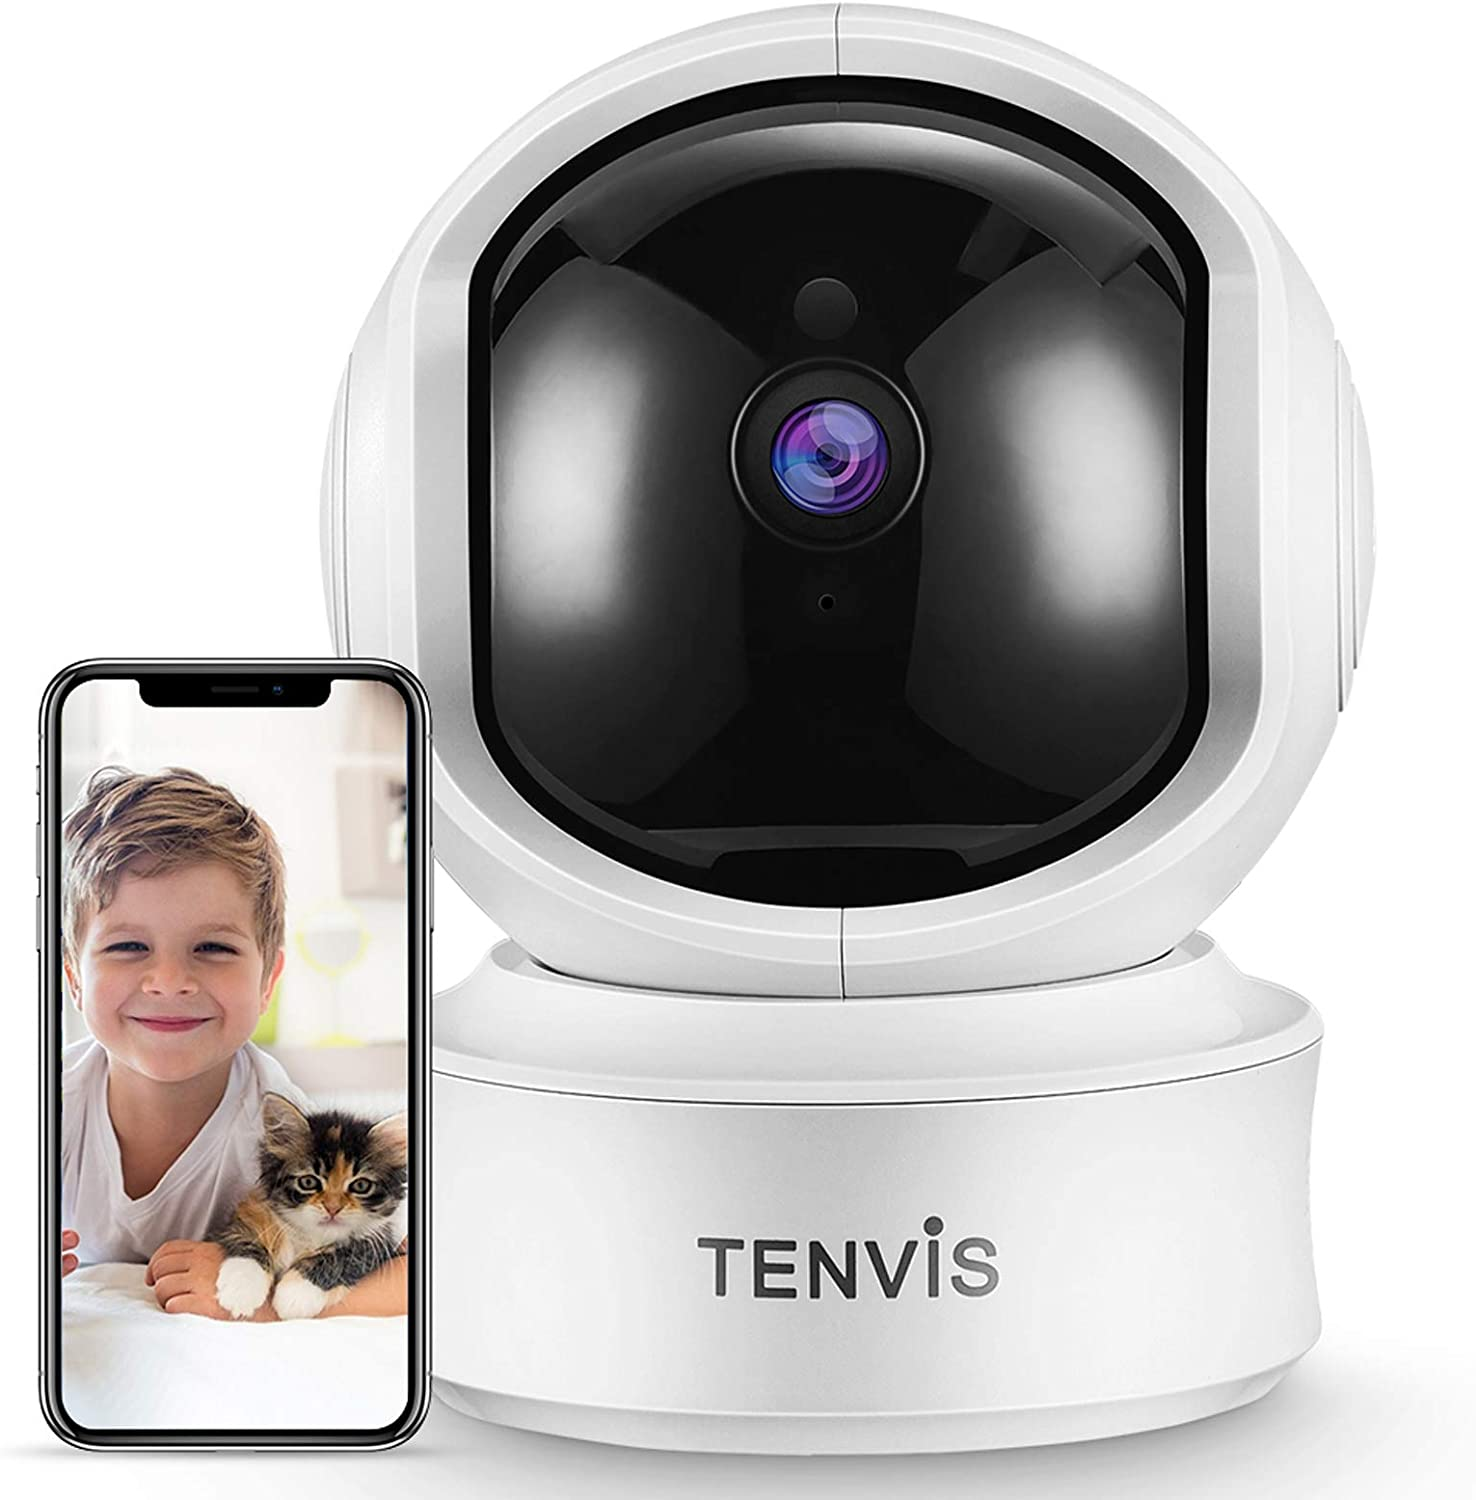 TENVIS 2K 3MP Indoor Security Camera - Dog Camera with Phone App, Sound/AI Motion Detection & Auto Tracking, Pan/Tilt WiFi IP Camera, 2-Way Audio, Night Vision, Works with Alexa, Baby/Nanny/Pet Camera